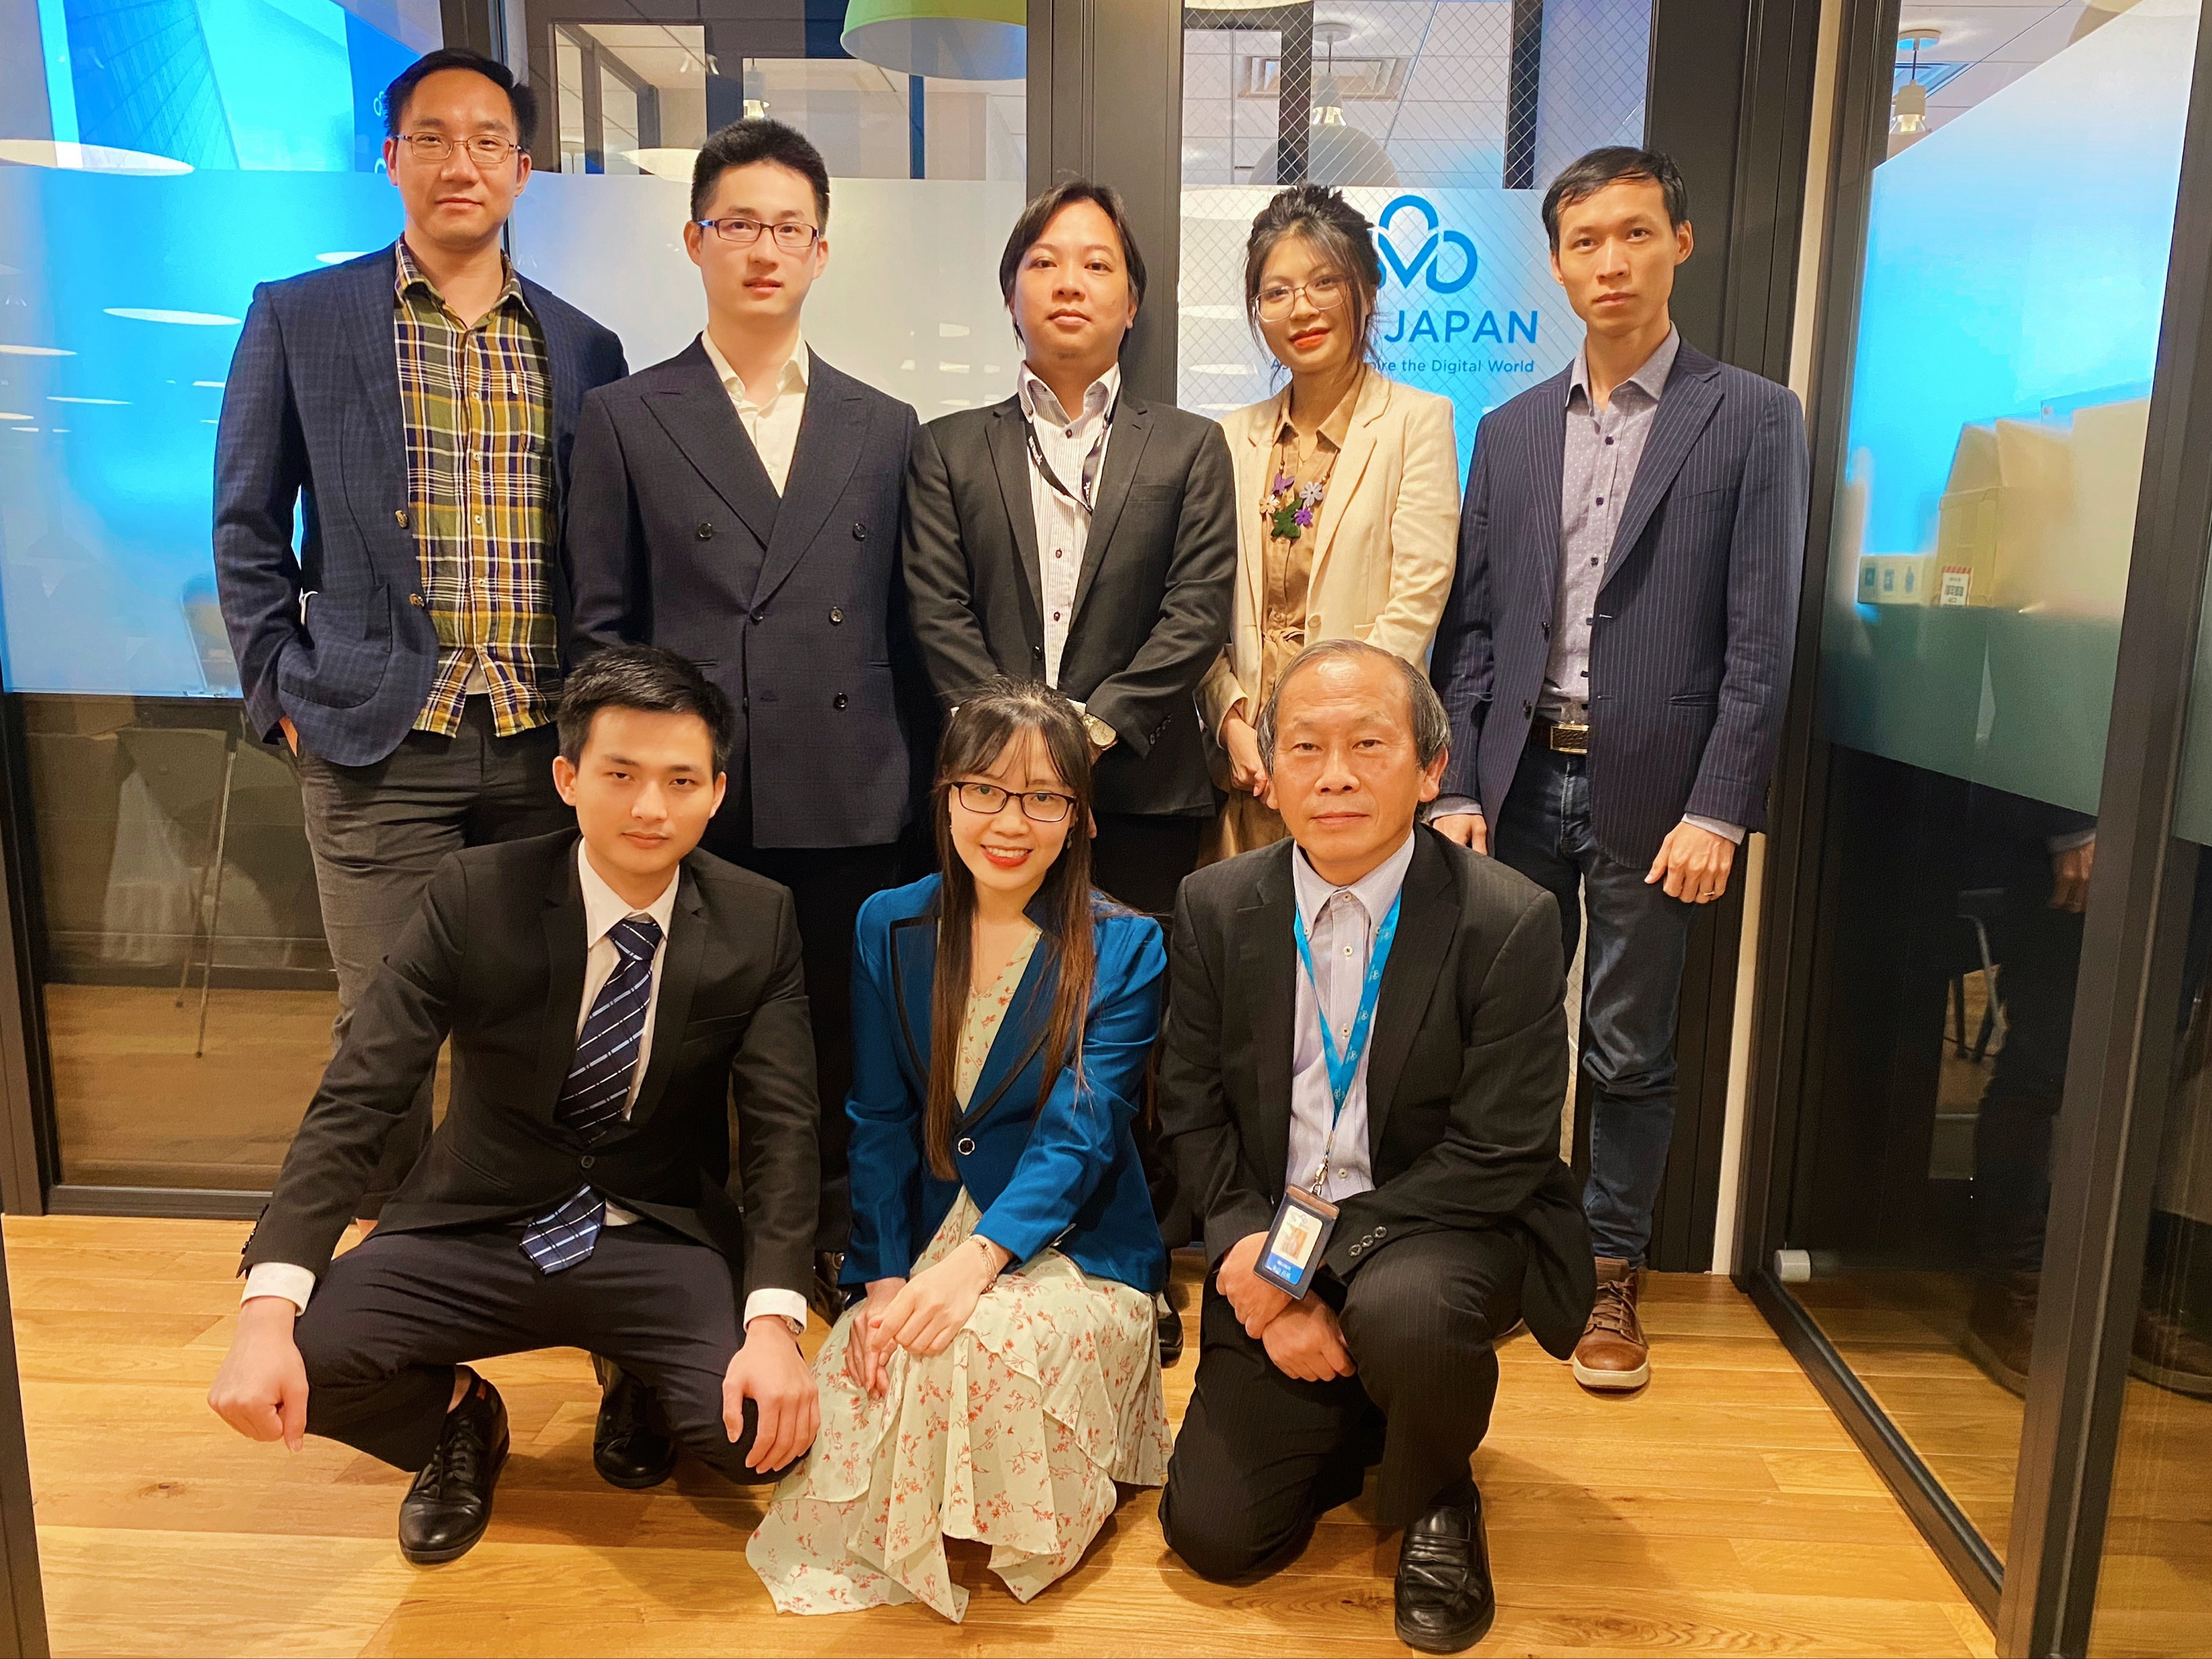 Si&C Digital and CMC Japan cooperate to roll out a 1-billion JPY project